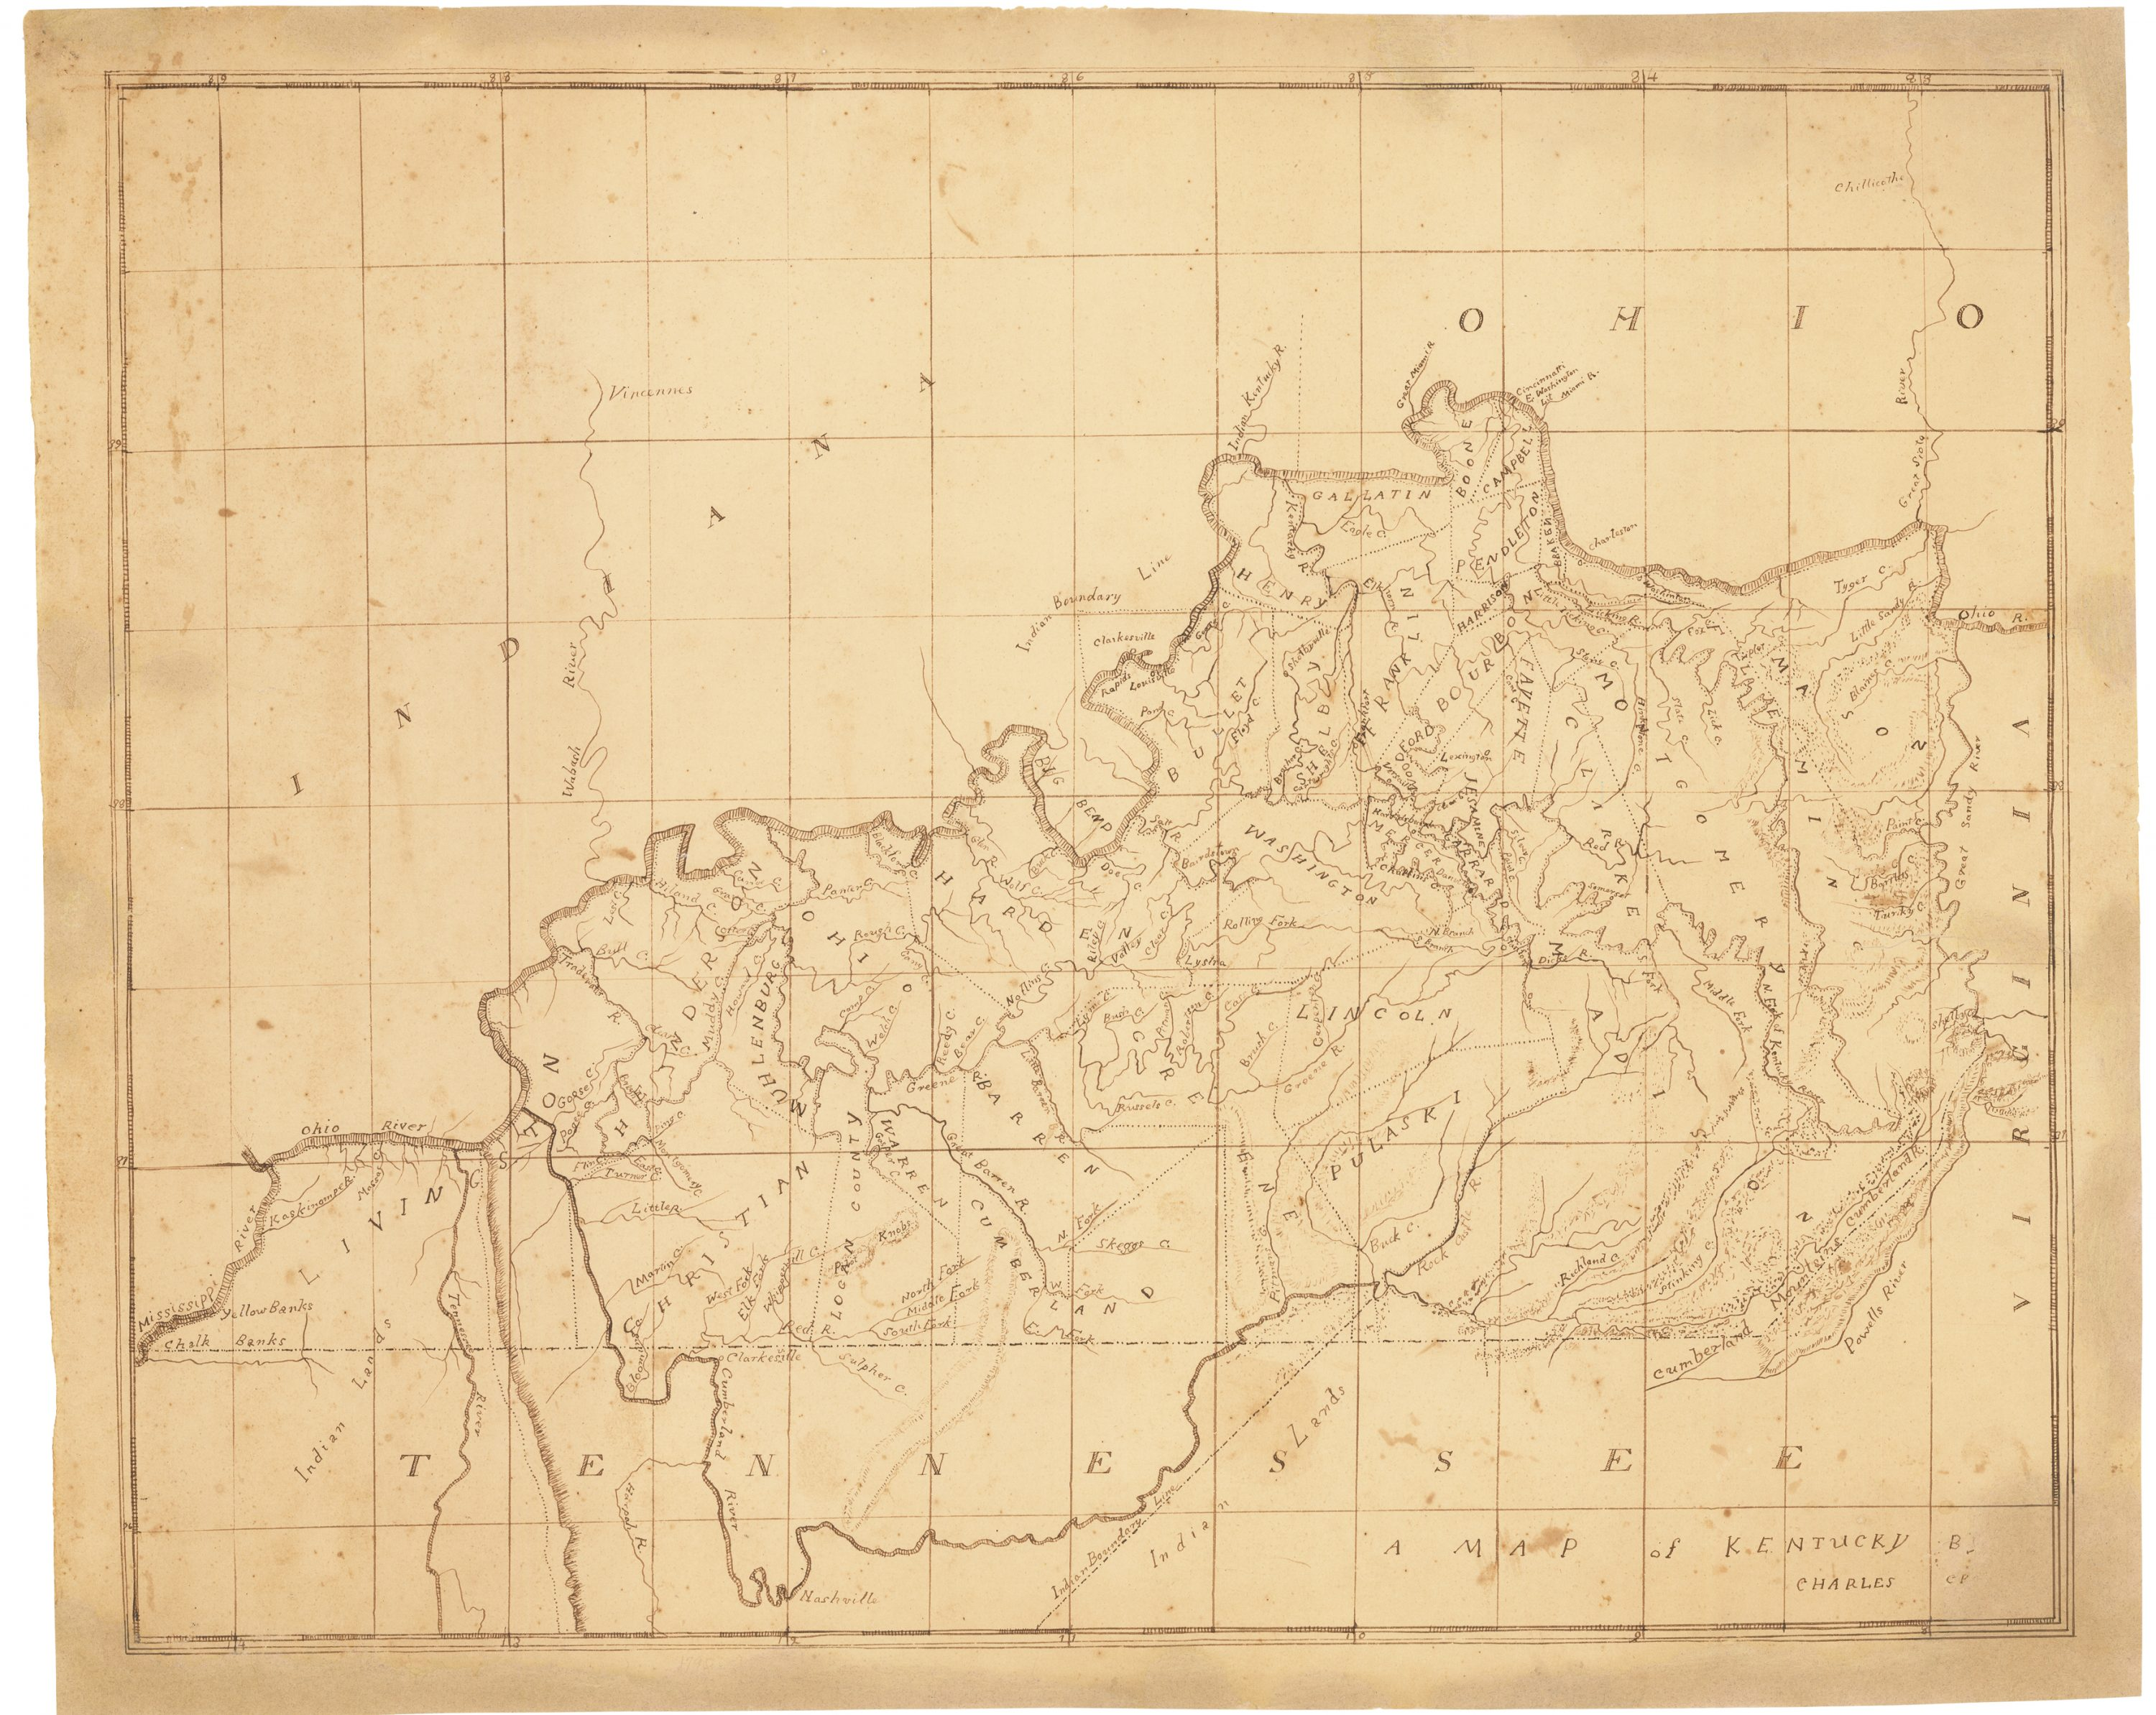 Schoolboy manuscript map of Kentucky, drawn on the frontier